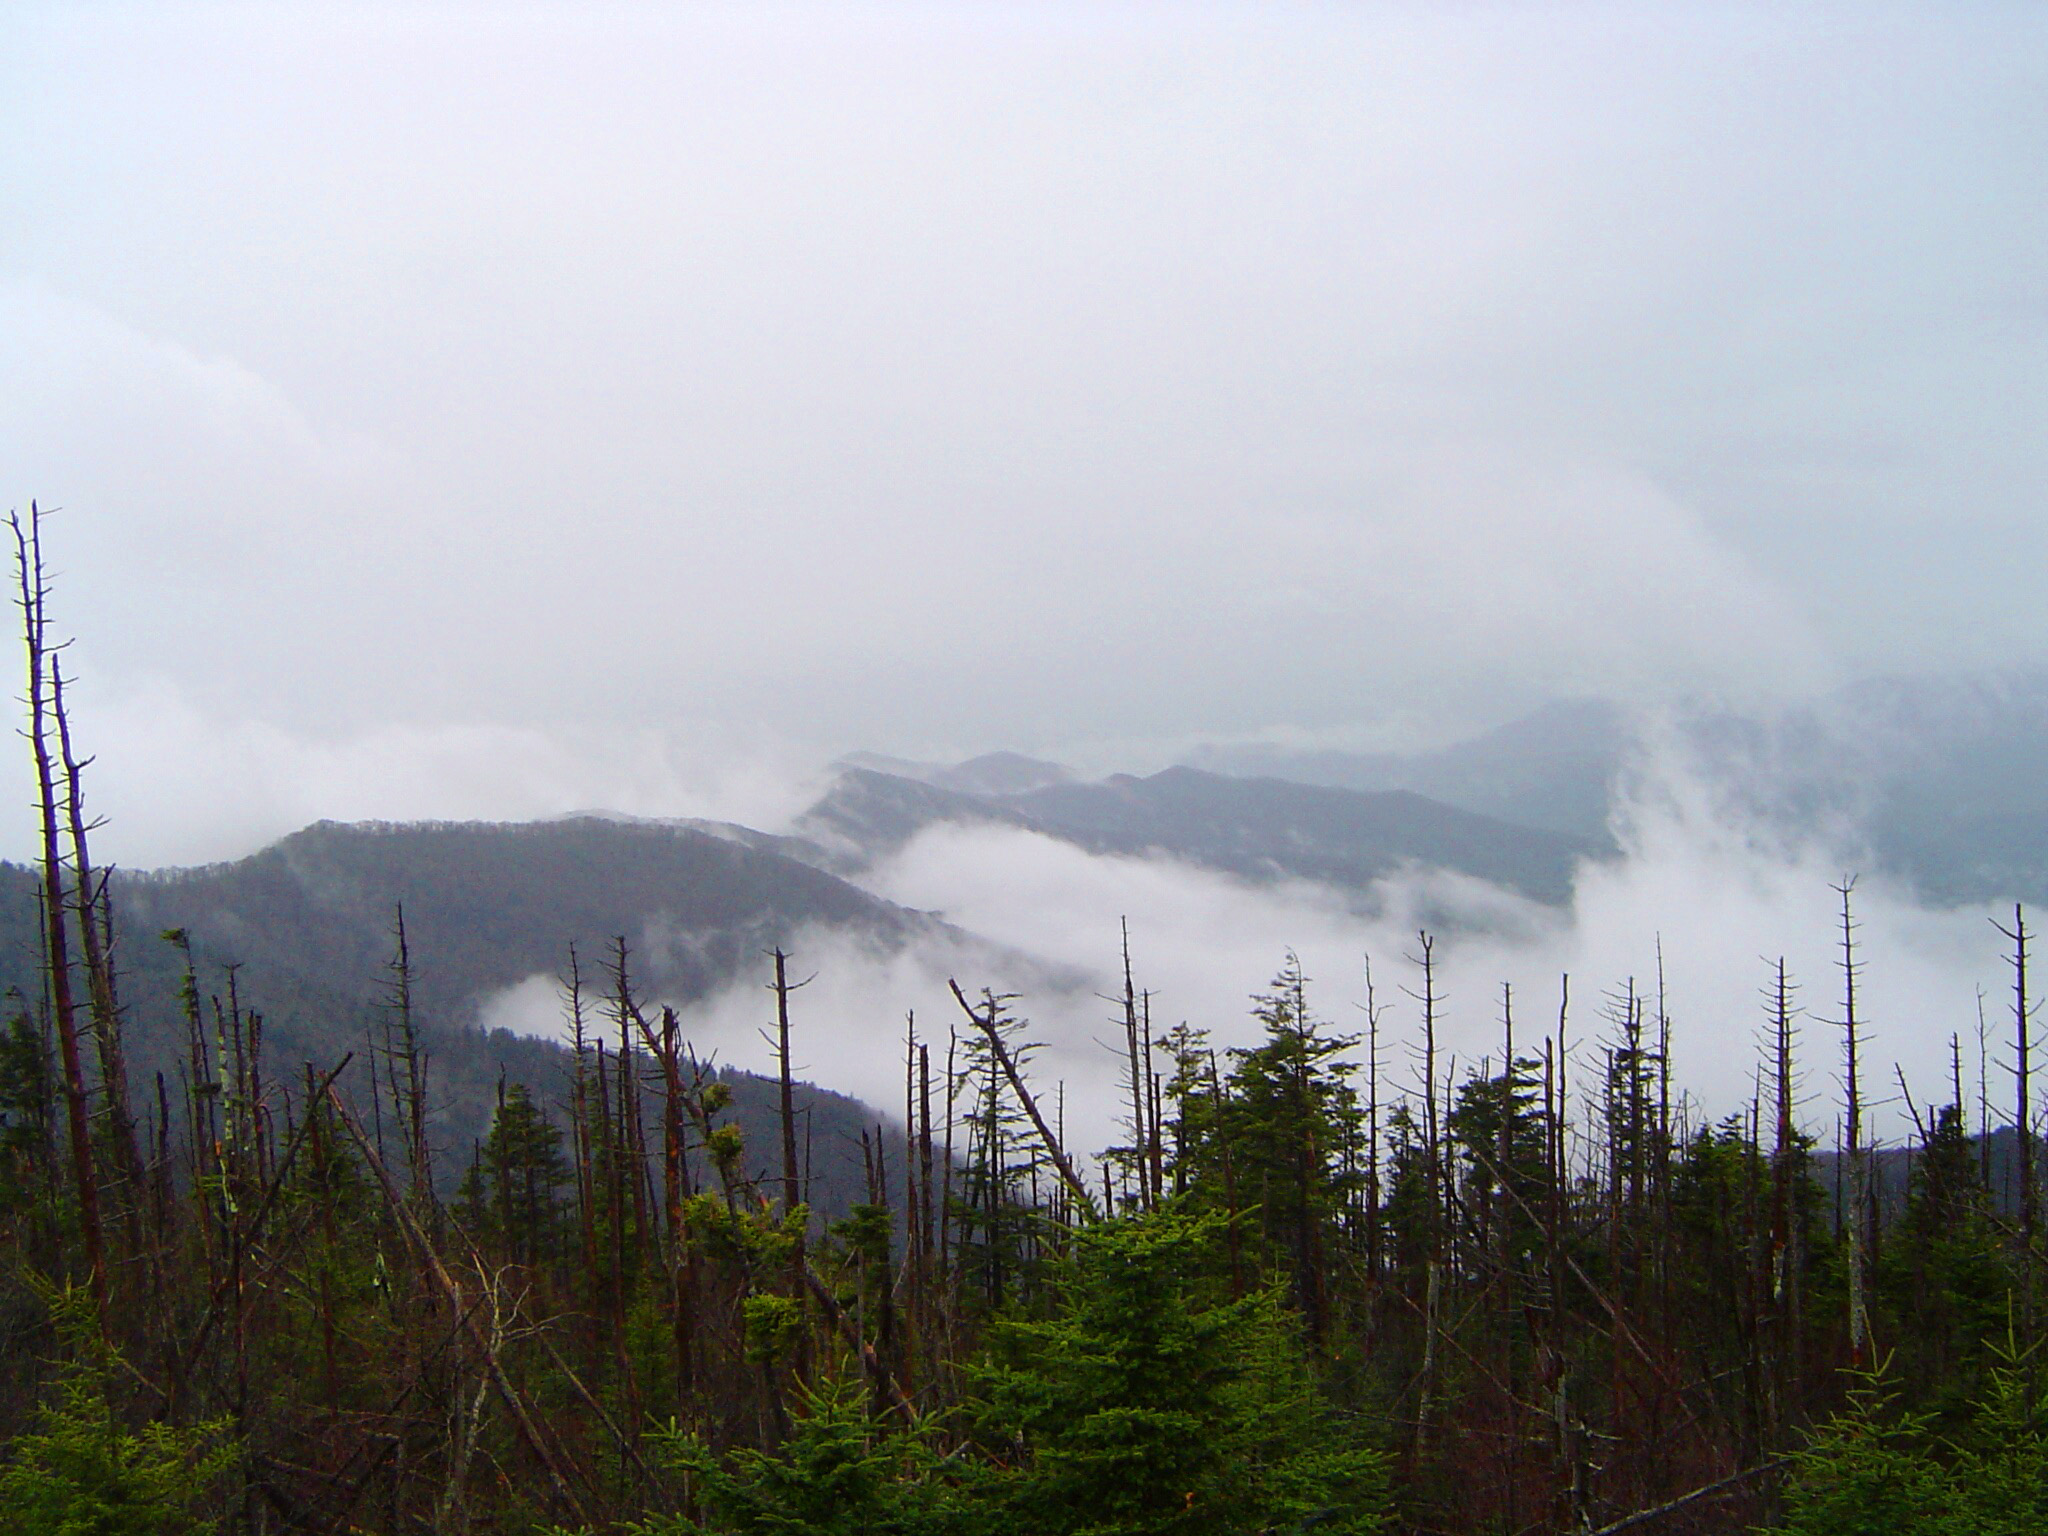 Mount Washington, USA, on a misty day with a foreground view of dead trees and cloud in the valleys